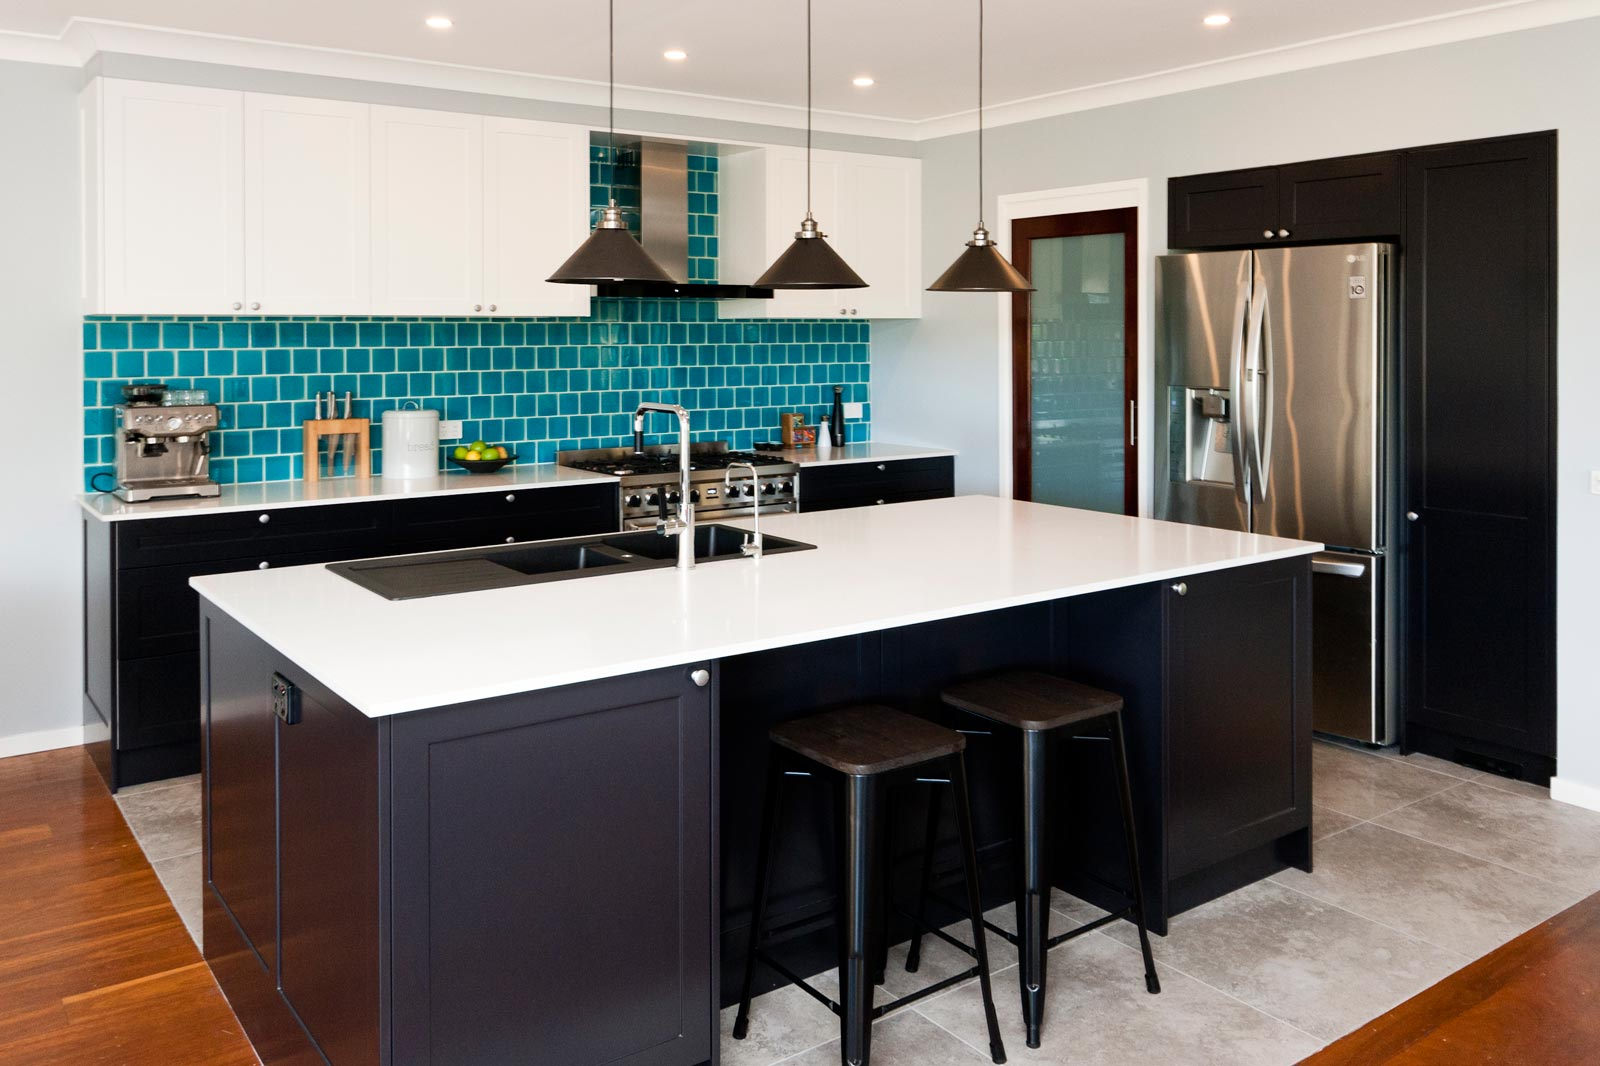 Merveilleux Art Deco Kitchen Design After Renovation Black And White Polyurethane  Joinery With Turquoise Blue Subway Tiles